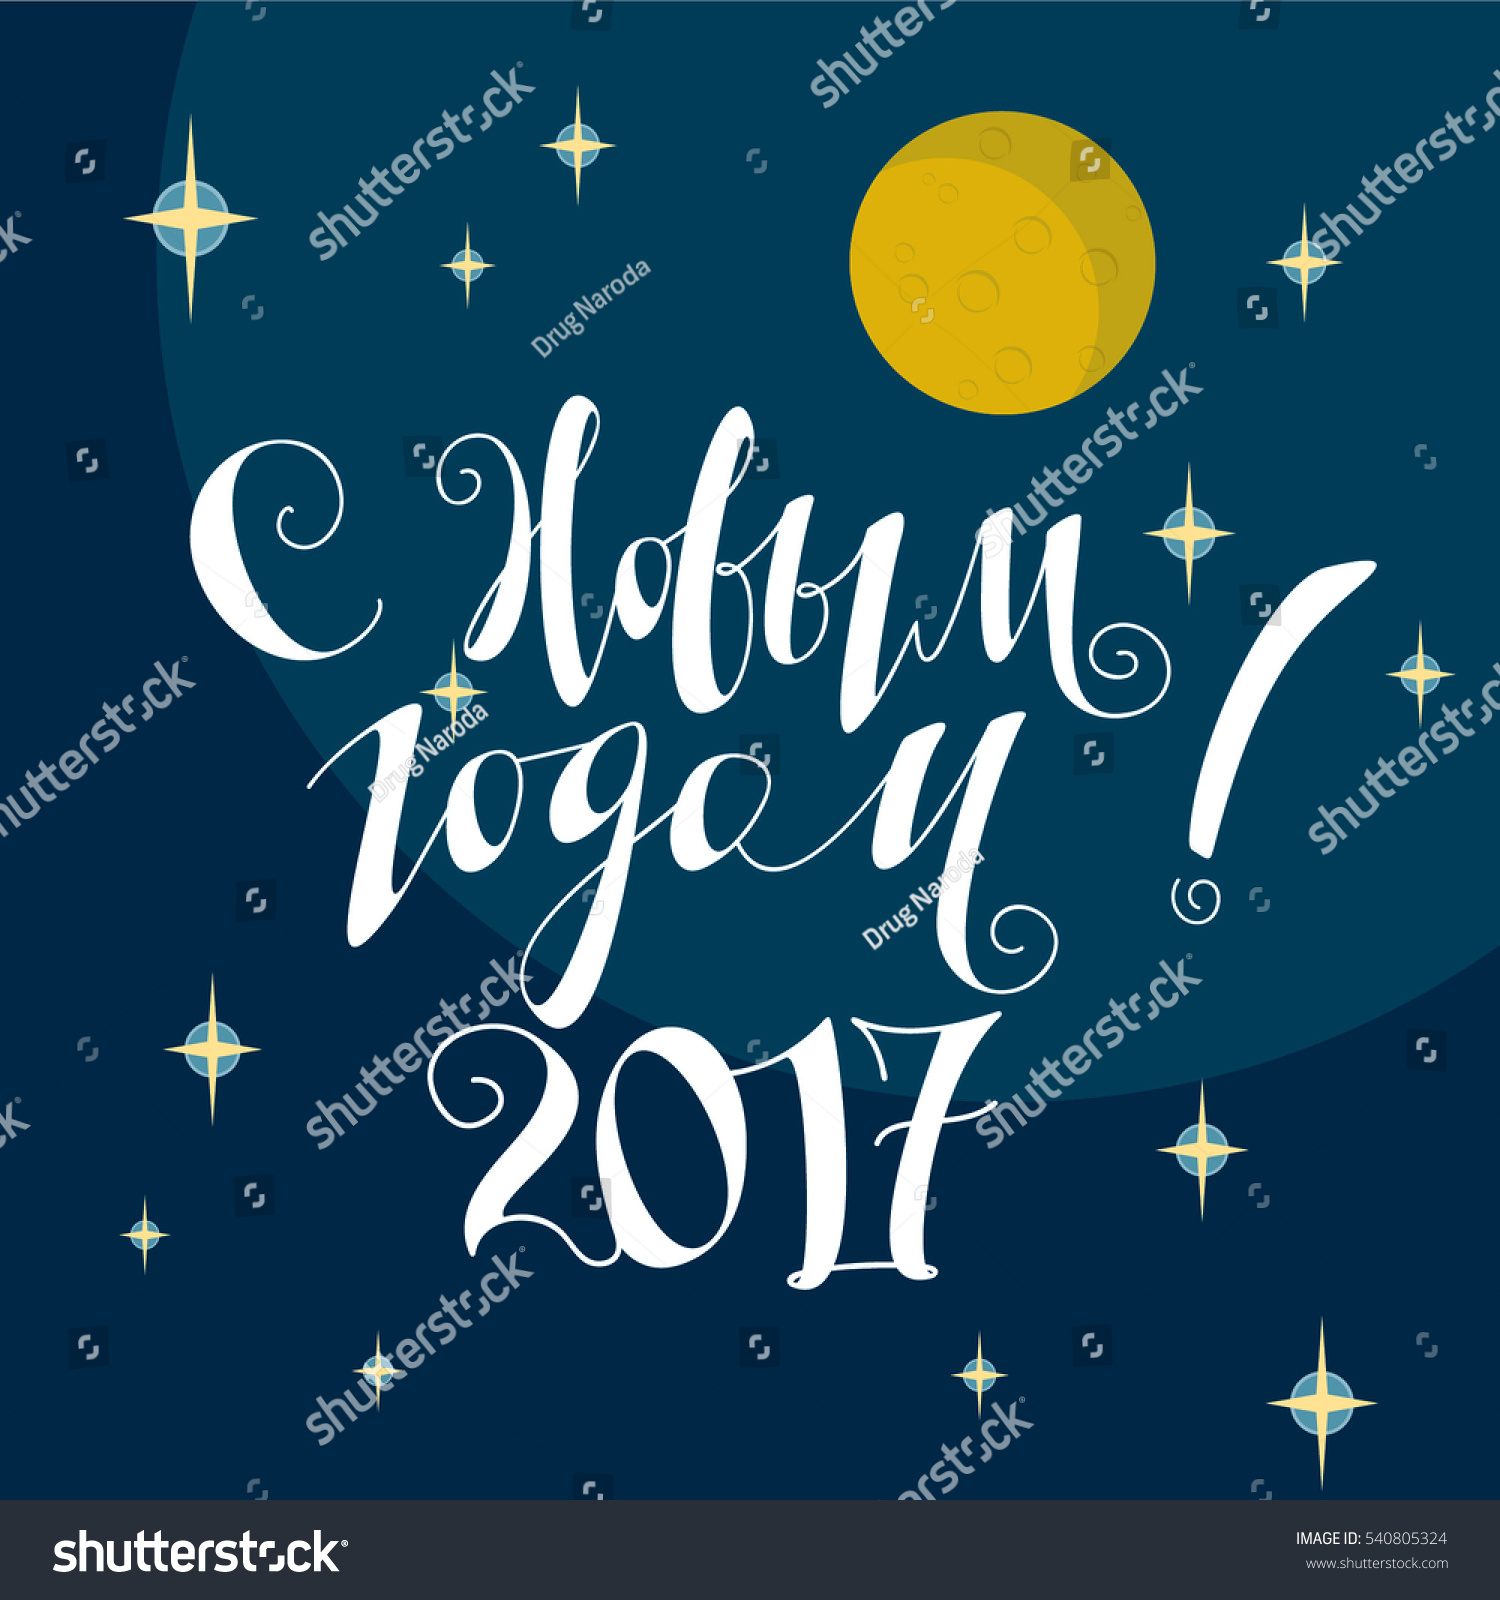 New year 2017 greetings russian text stock vector royalty free new year 2017 greetings russian text lettering logo design with night winter sky moon and stars m4hsunfo